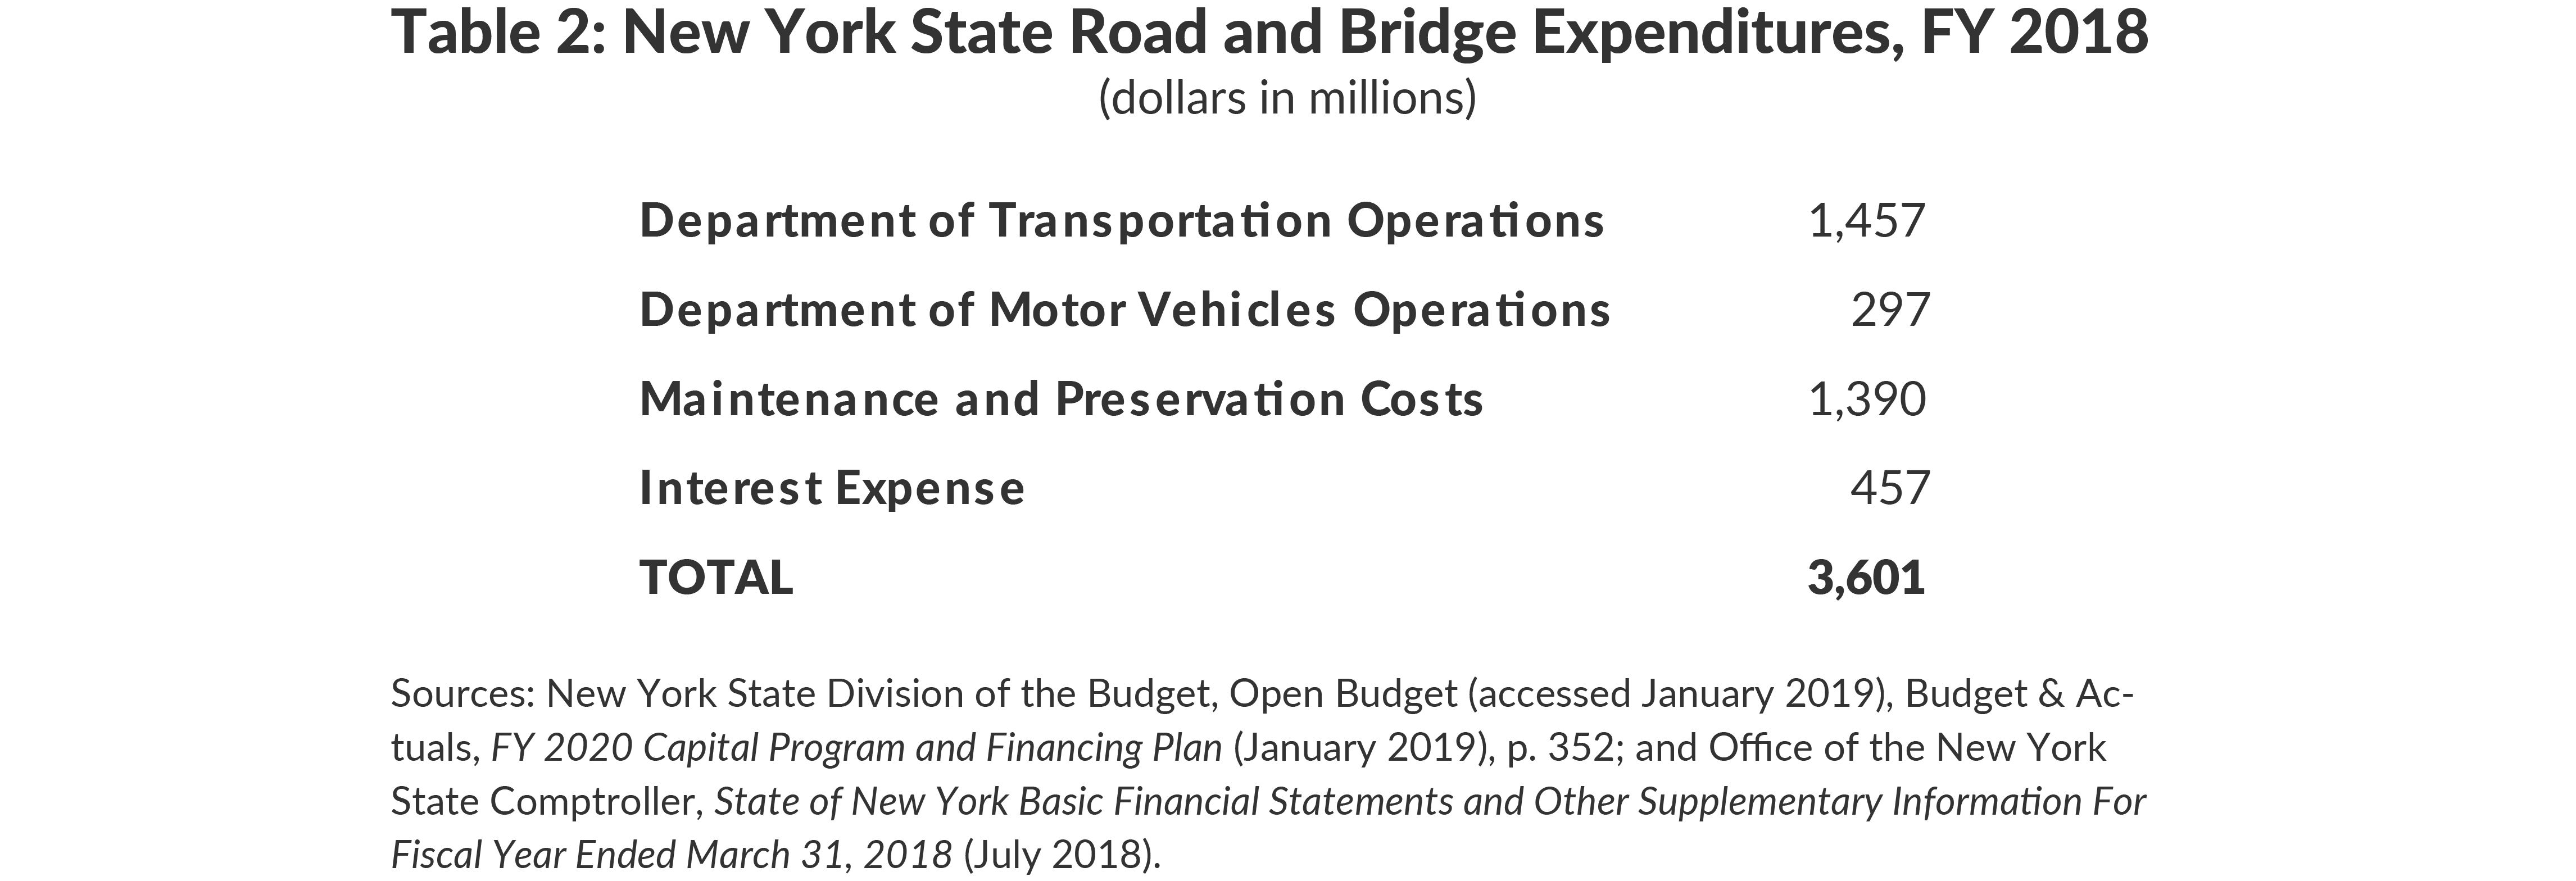 Table 2: New York State Road and Bridge Expenditures, FY 2018